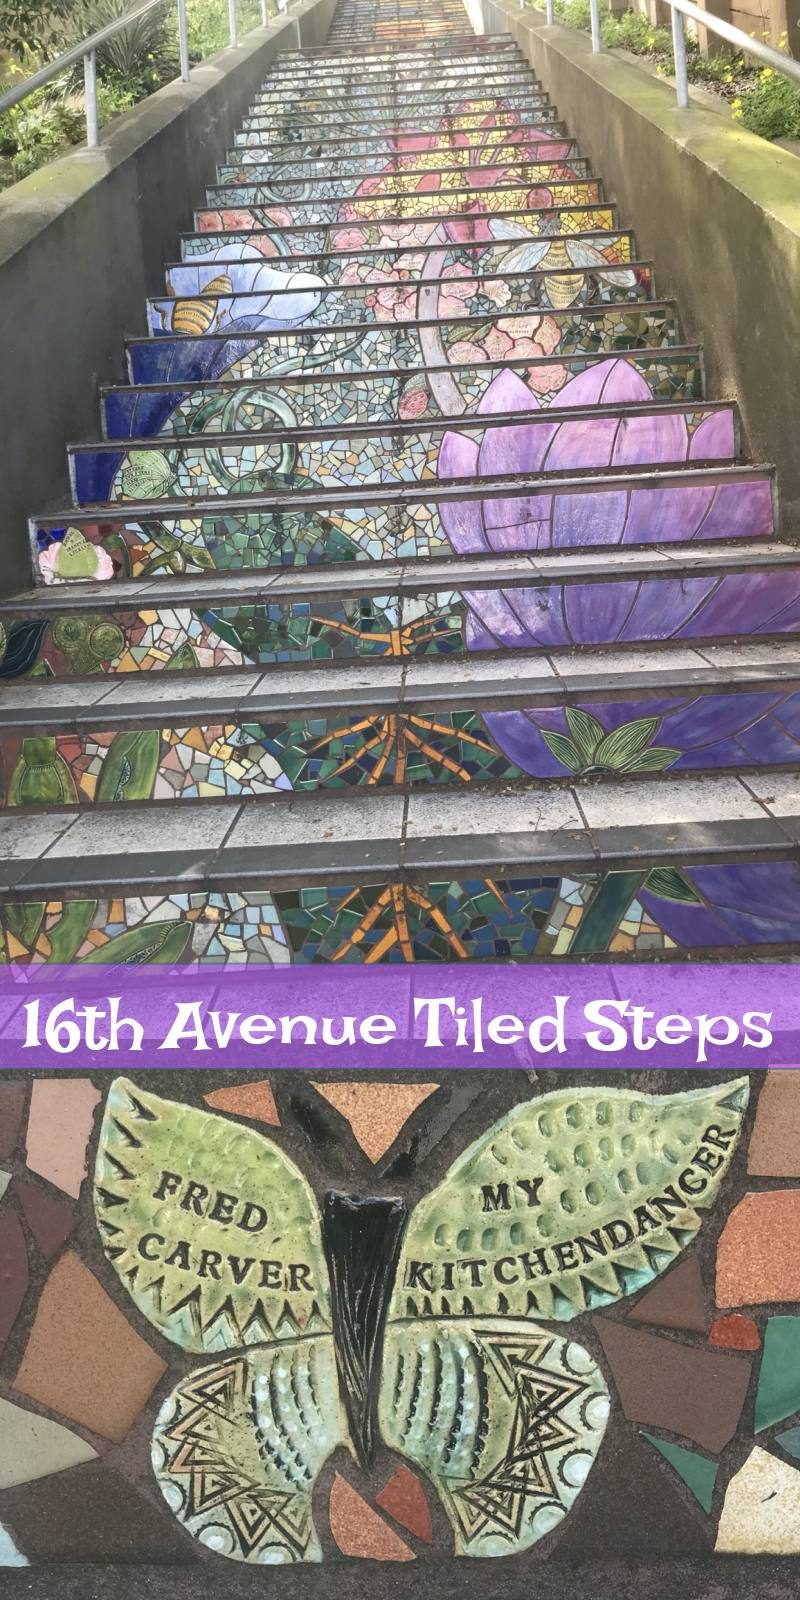 Butterfly tile and purple flower in the 16th Avenue hidden steps